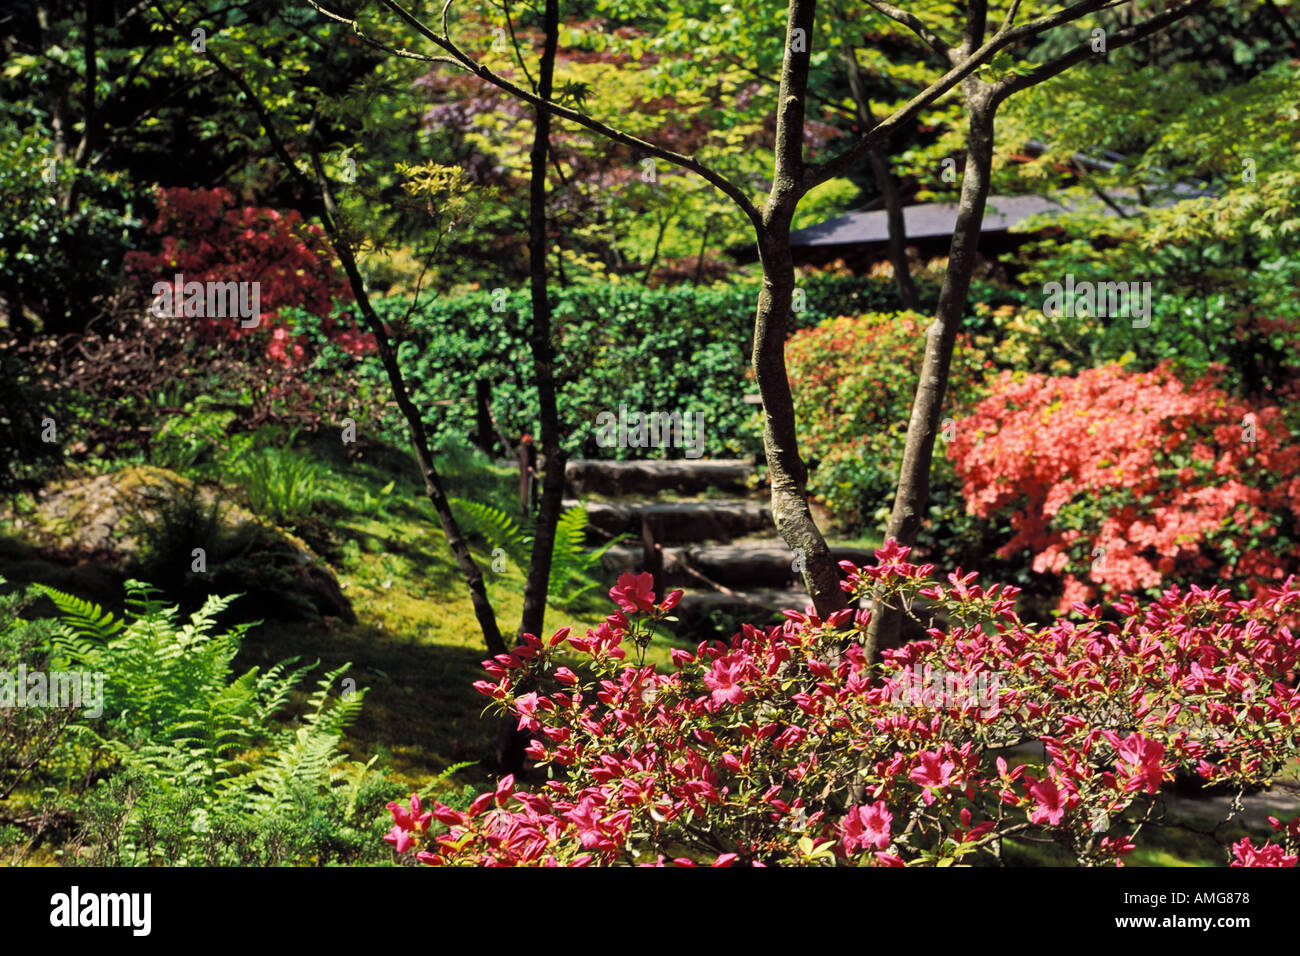 Japanese Garden At The University Of Washington Arboretum Seattle Washington